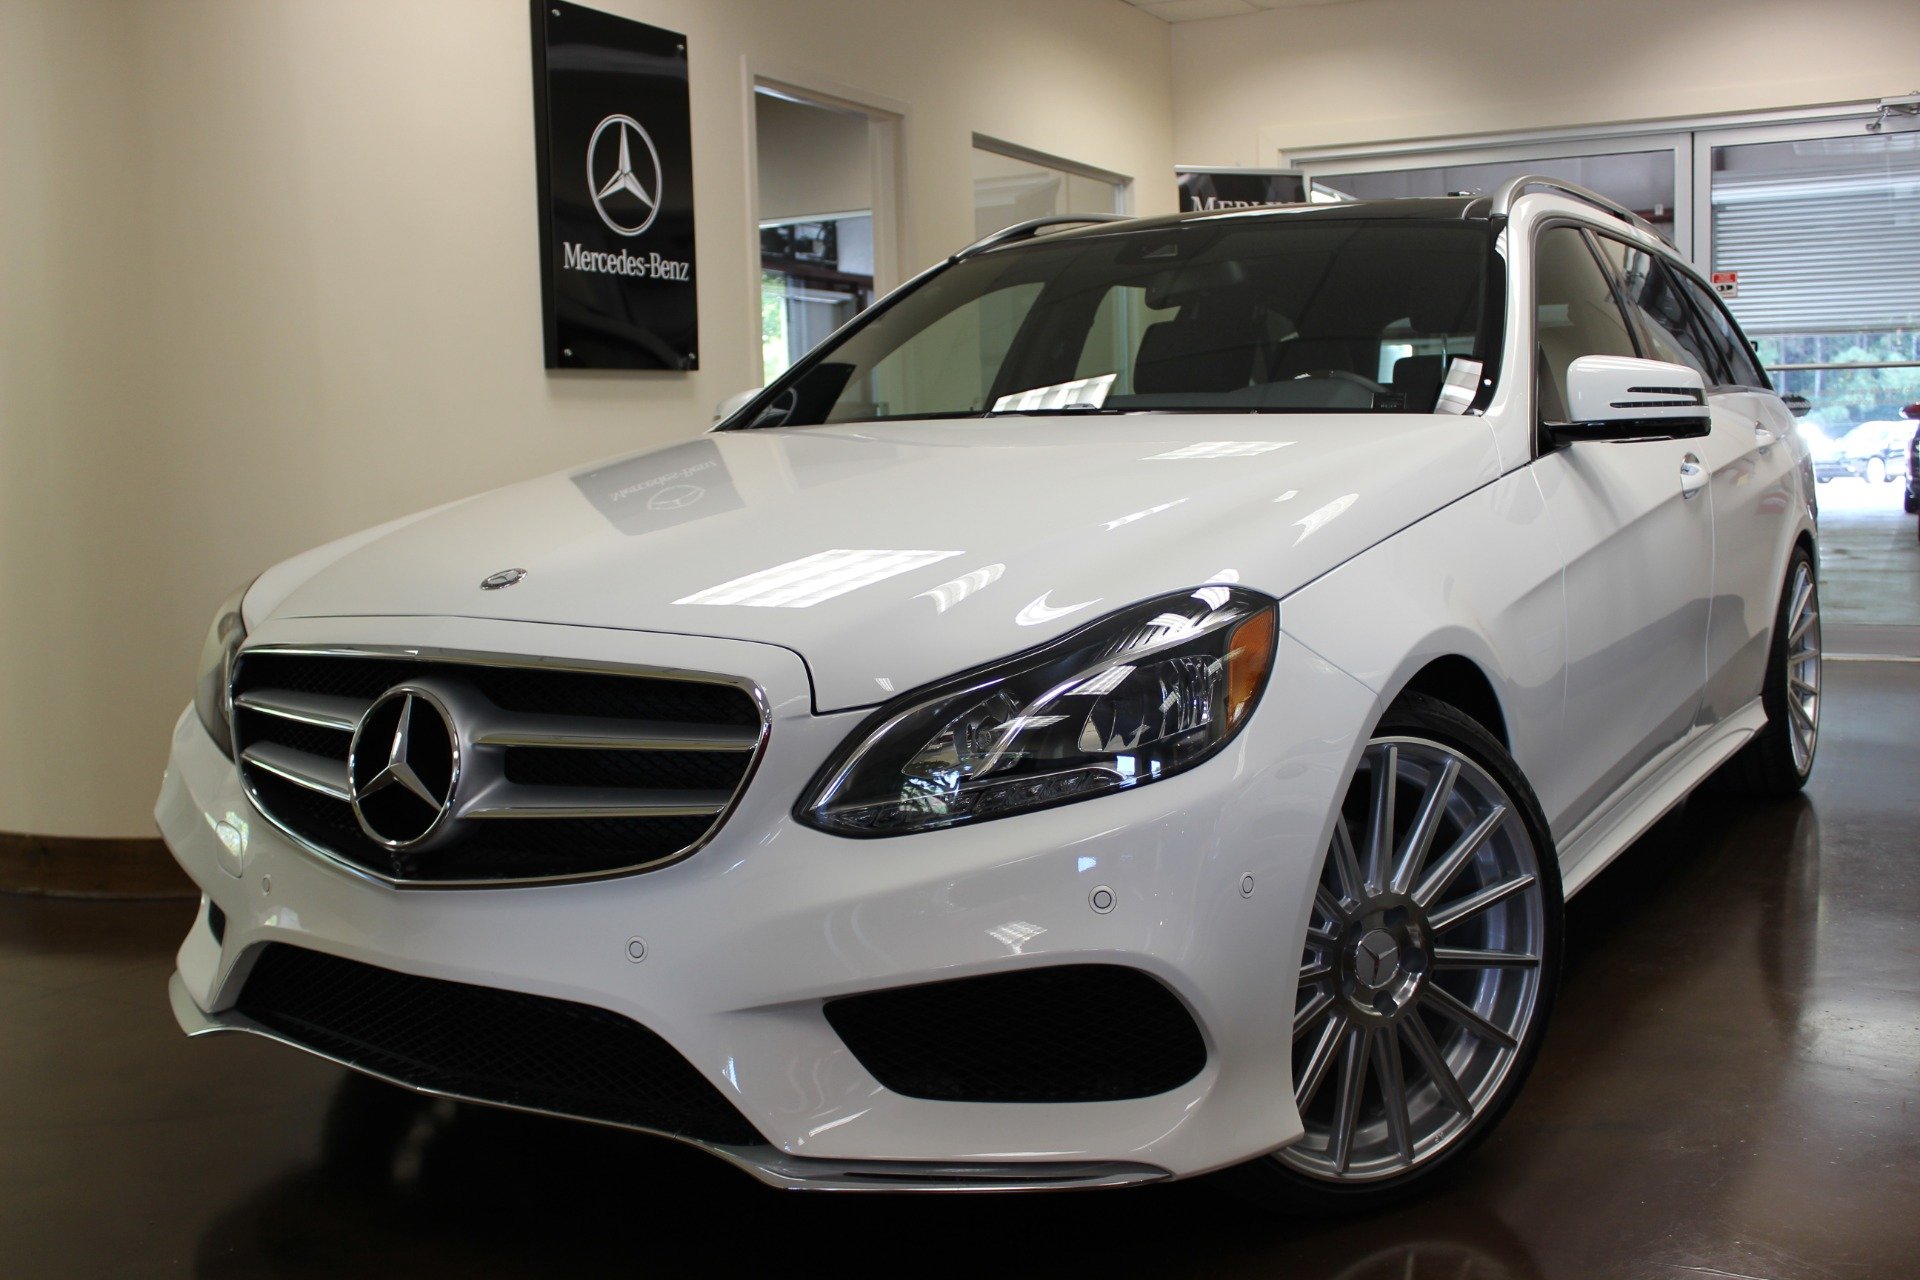 Used 2015 mercedes benz e class stock p3223 ultra luxury for Used mercedes benz e350 coupe